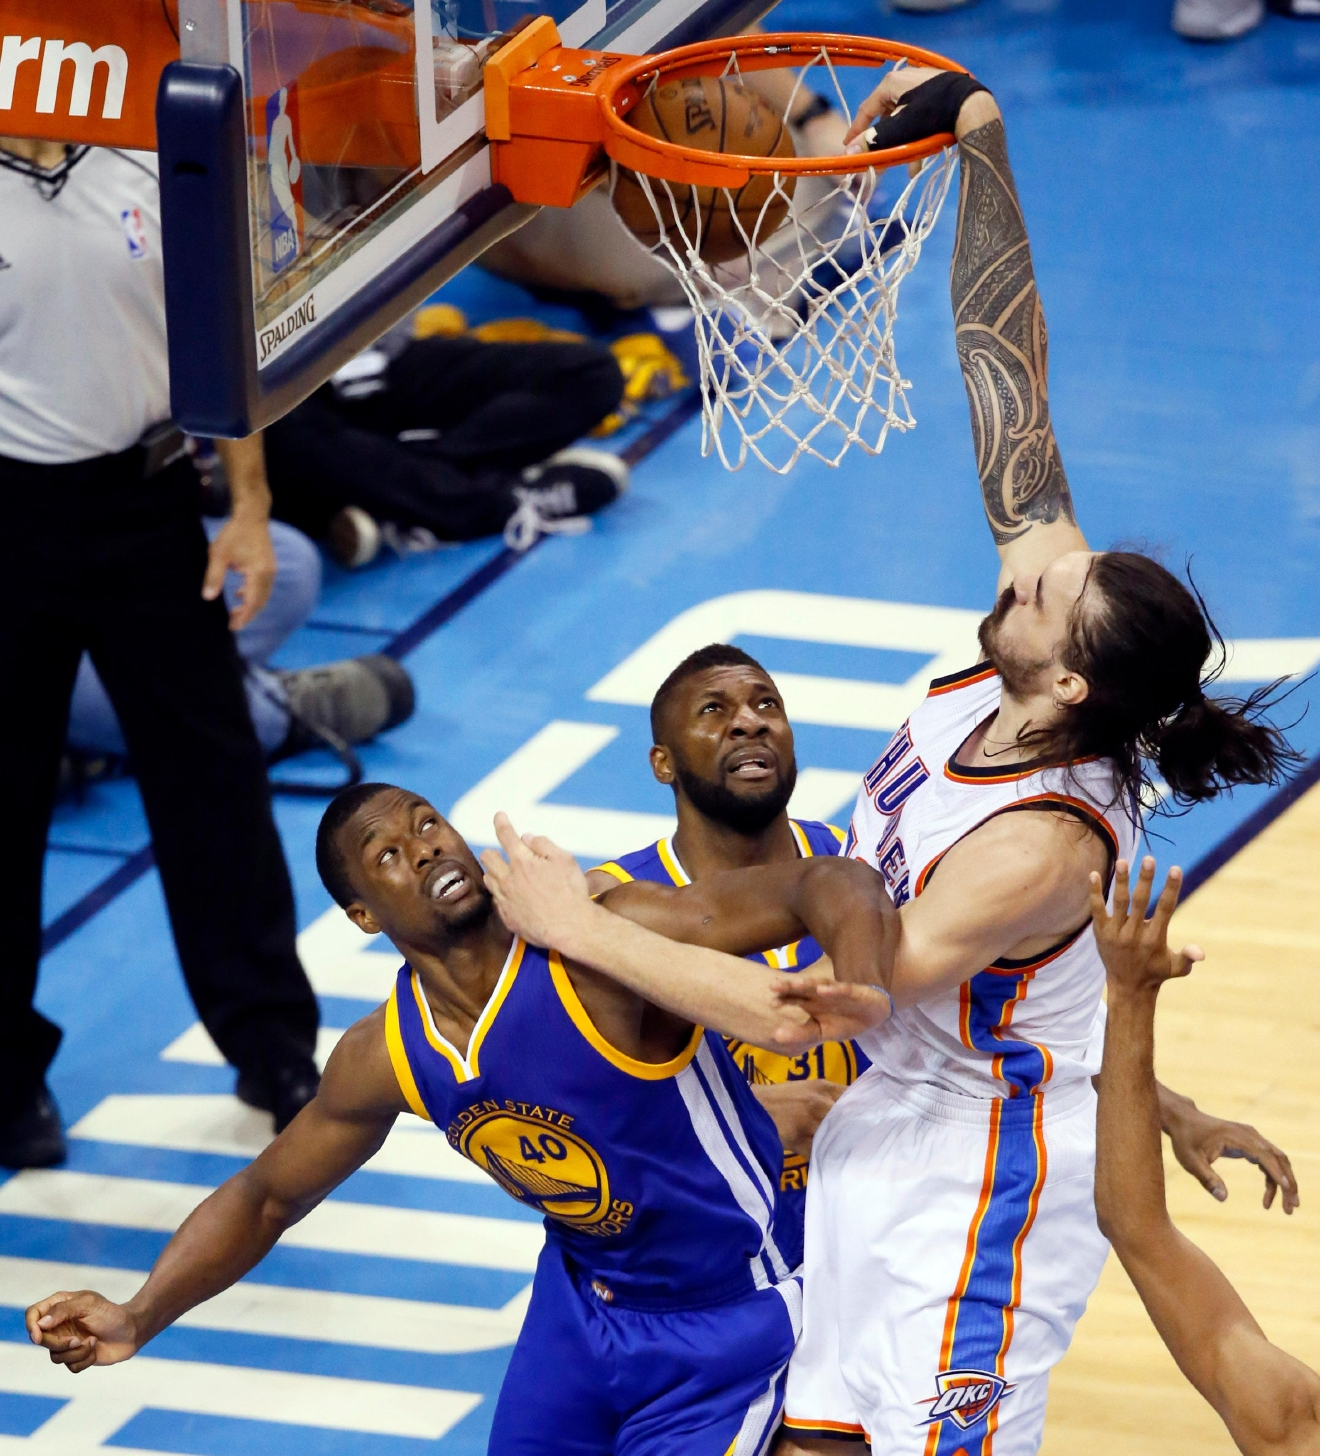 Oklahoma City Thunder center Steven Adams (12) dunks over Golden State Warriors forward Harrison Barnes (40) and center Festus Ezeli (31) during the second half in Game 4 of the NBA basketball Western Conference finals in Oklahoma City, Tuesday, May 24, 2016. (AP Photo/Sue Ogrocki)